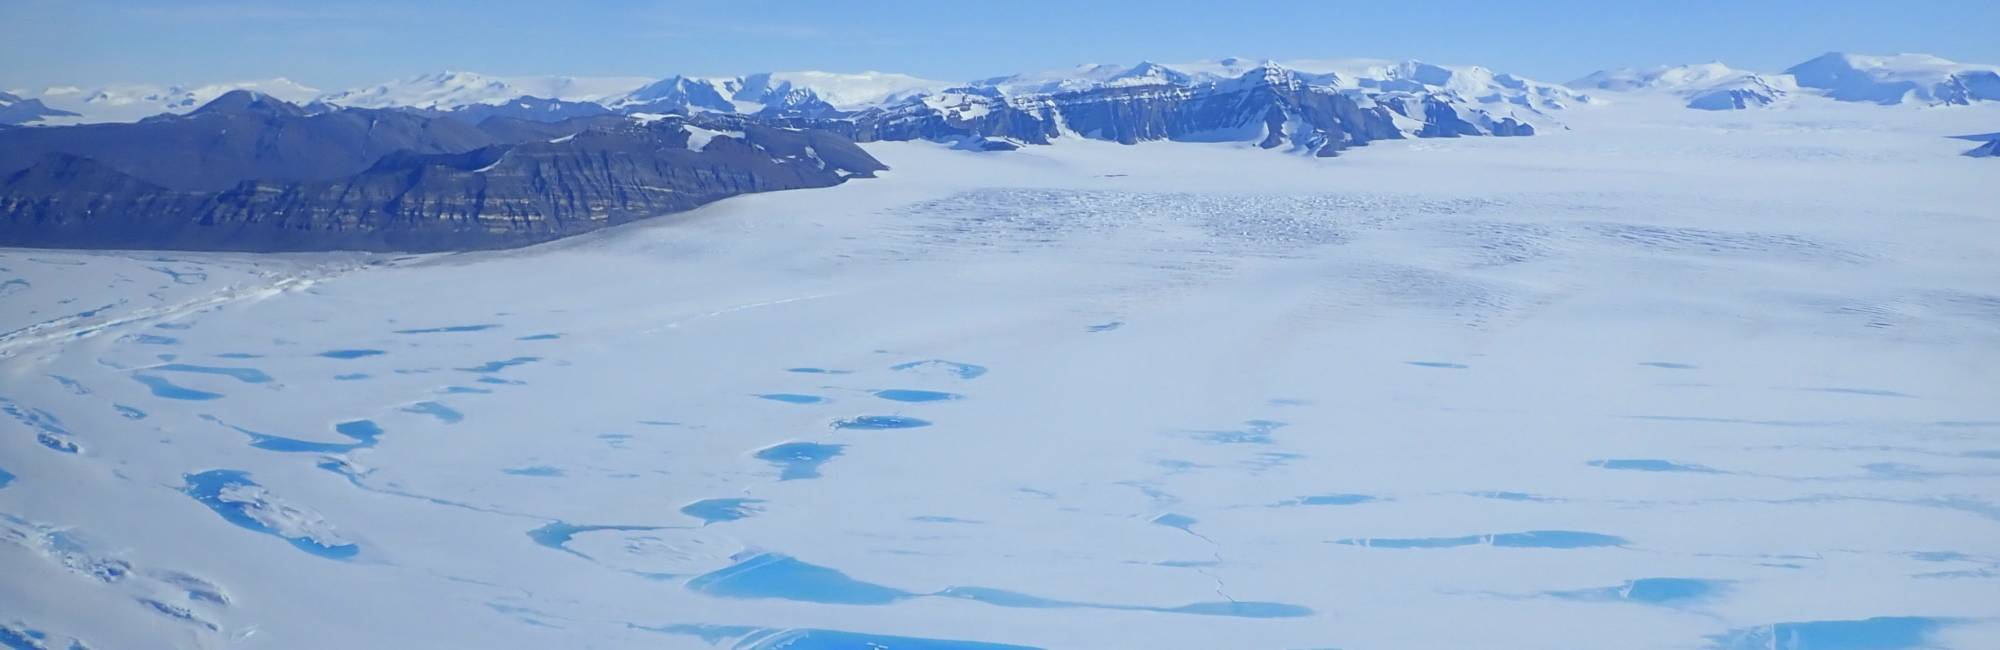 Photo of meltwater lakes on Antarctica's George VI Ice Shelf.